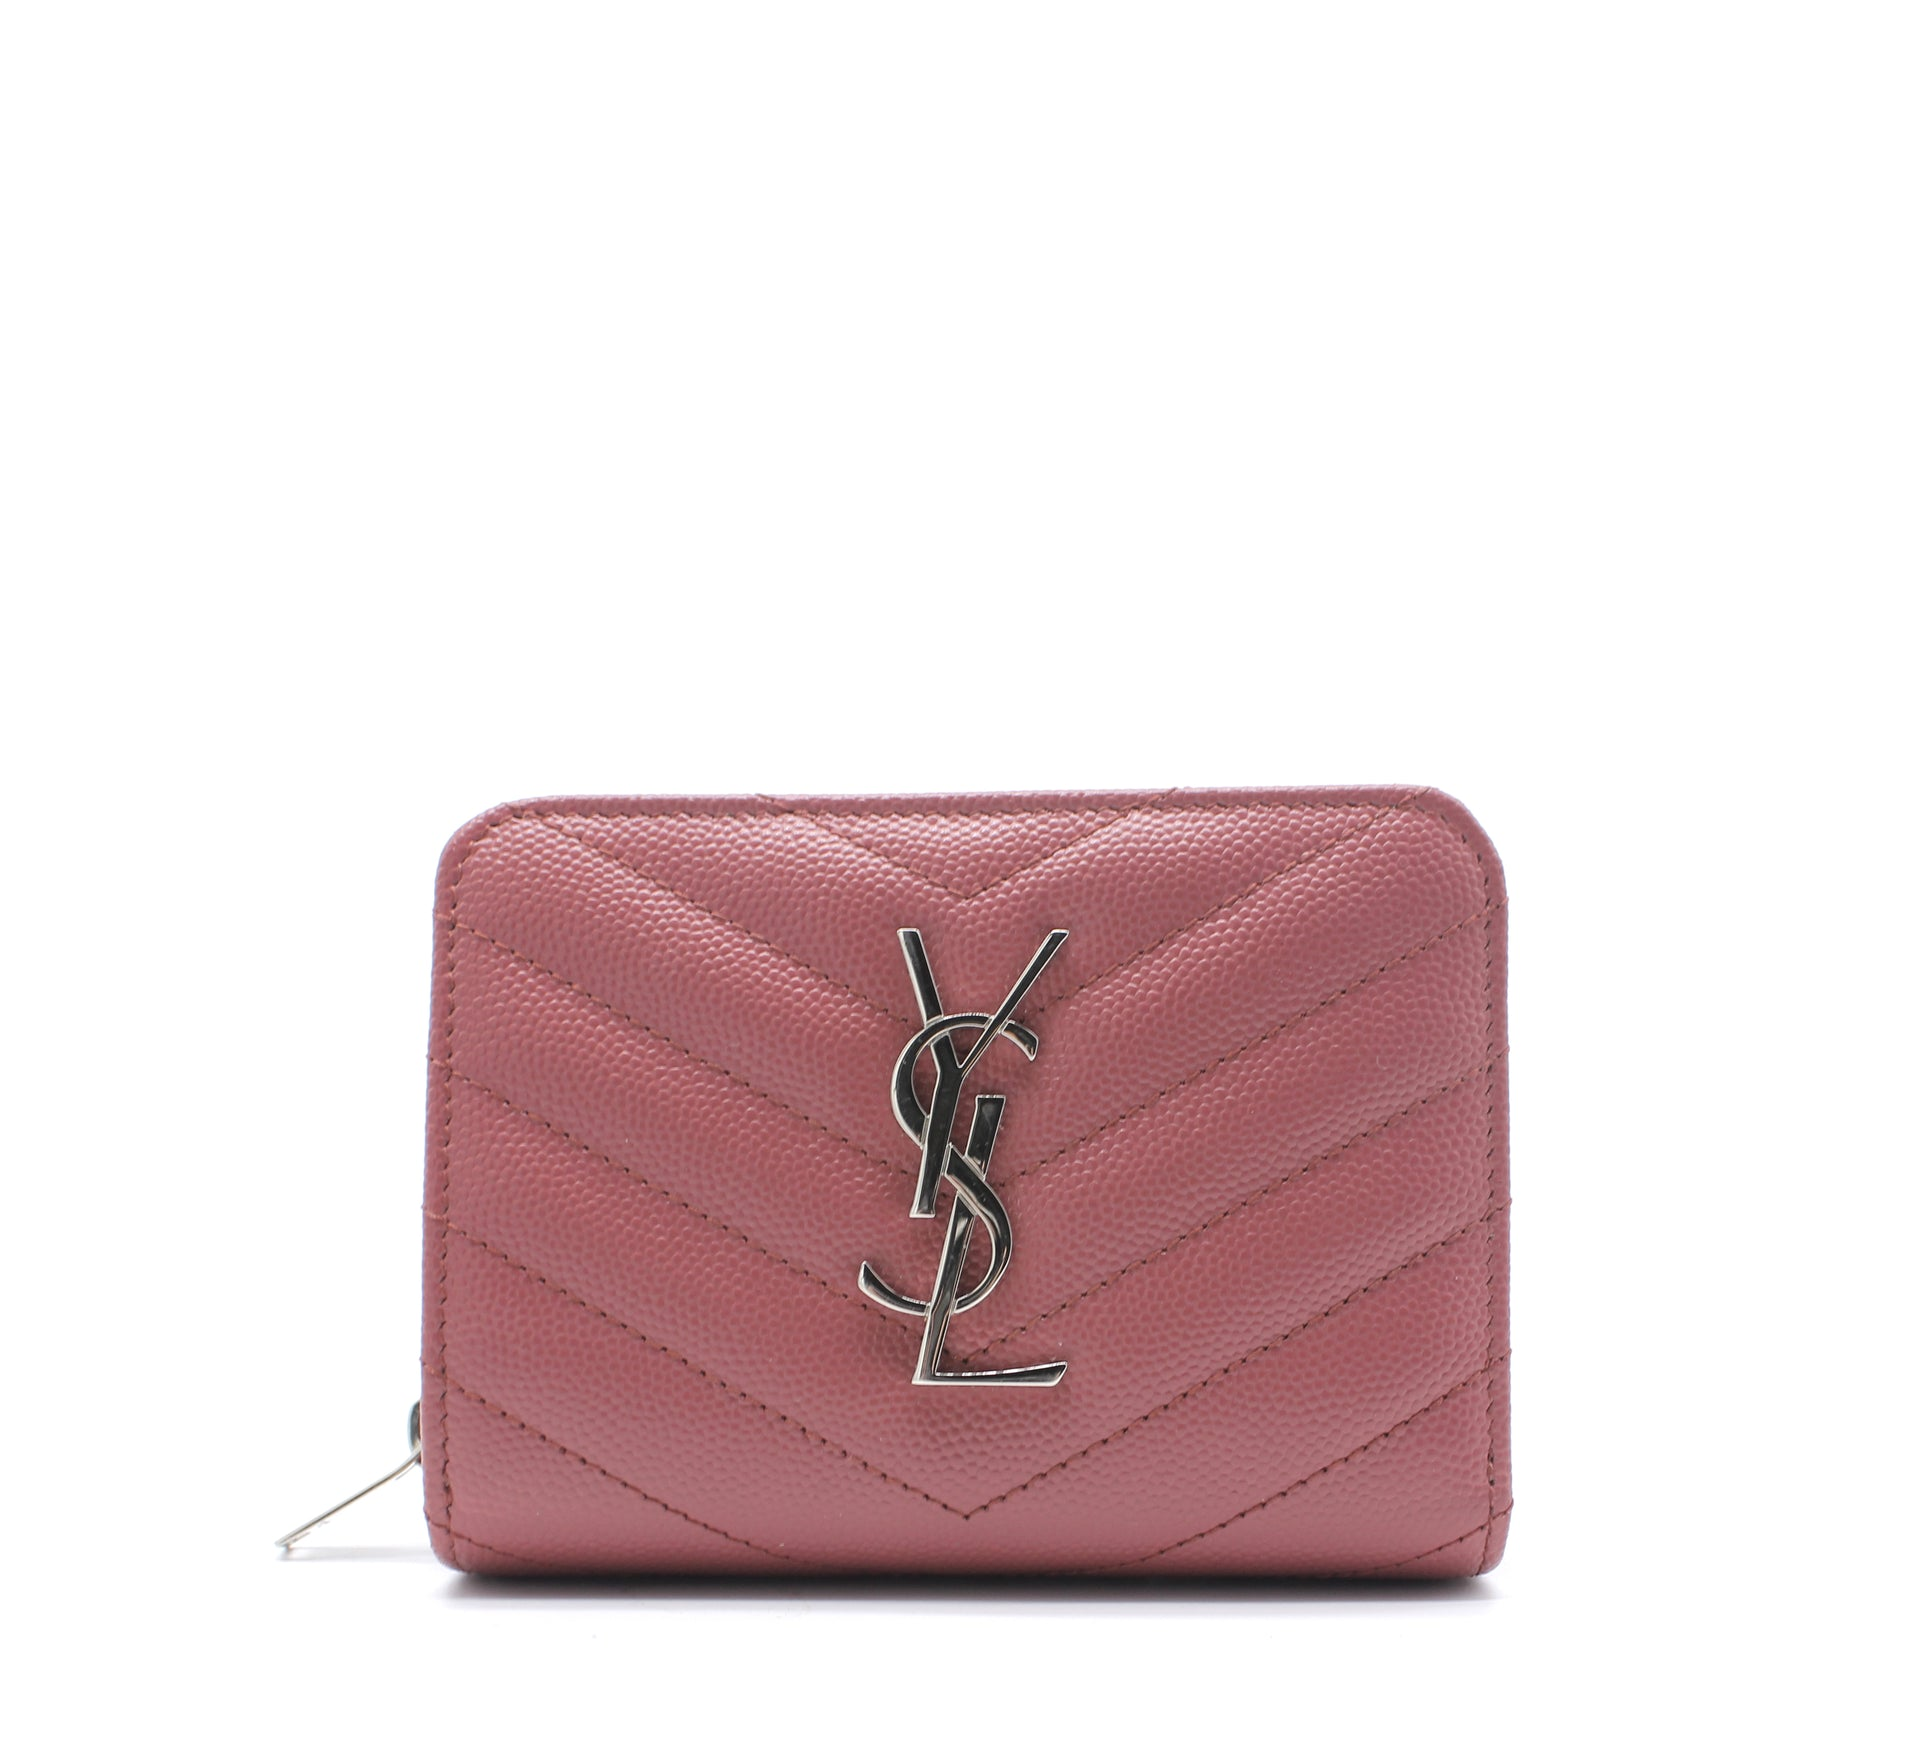 Saint Laurent Monogram zip around compact wallet